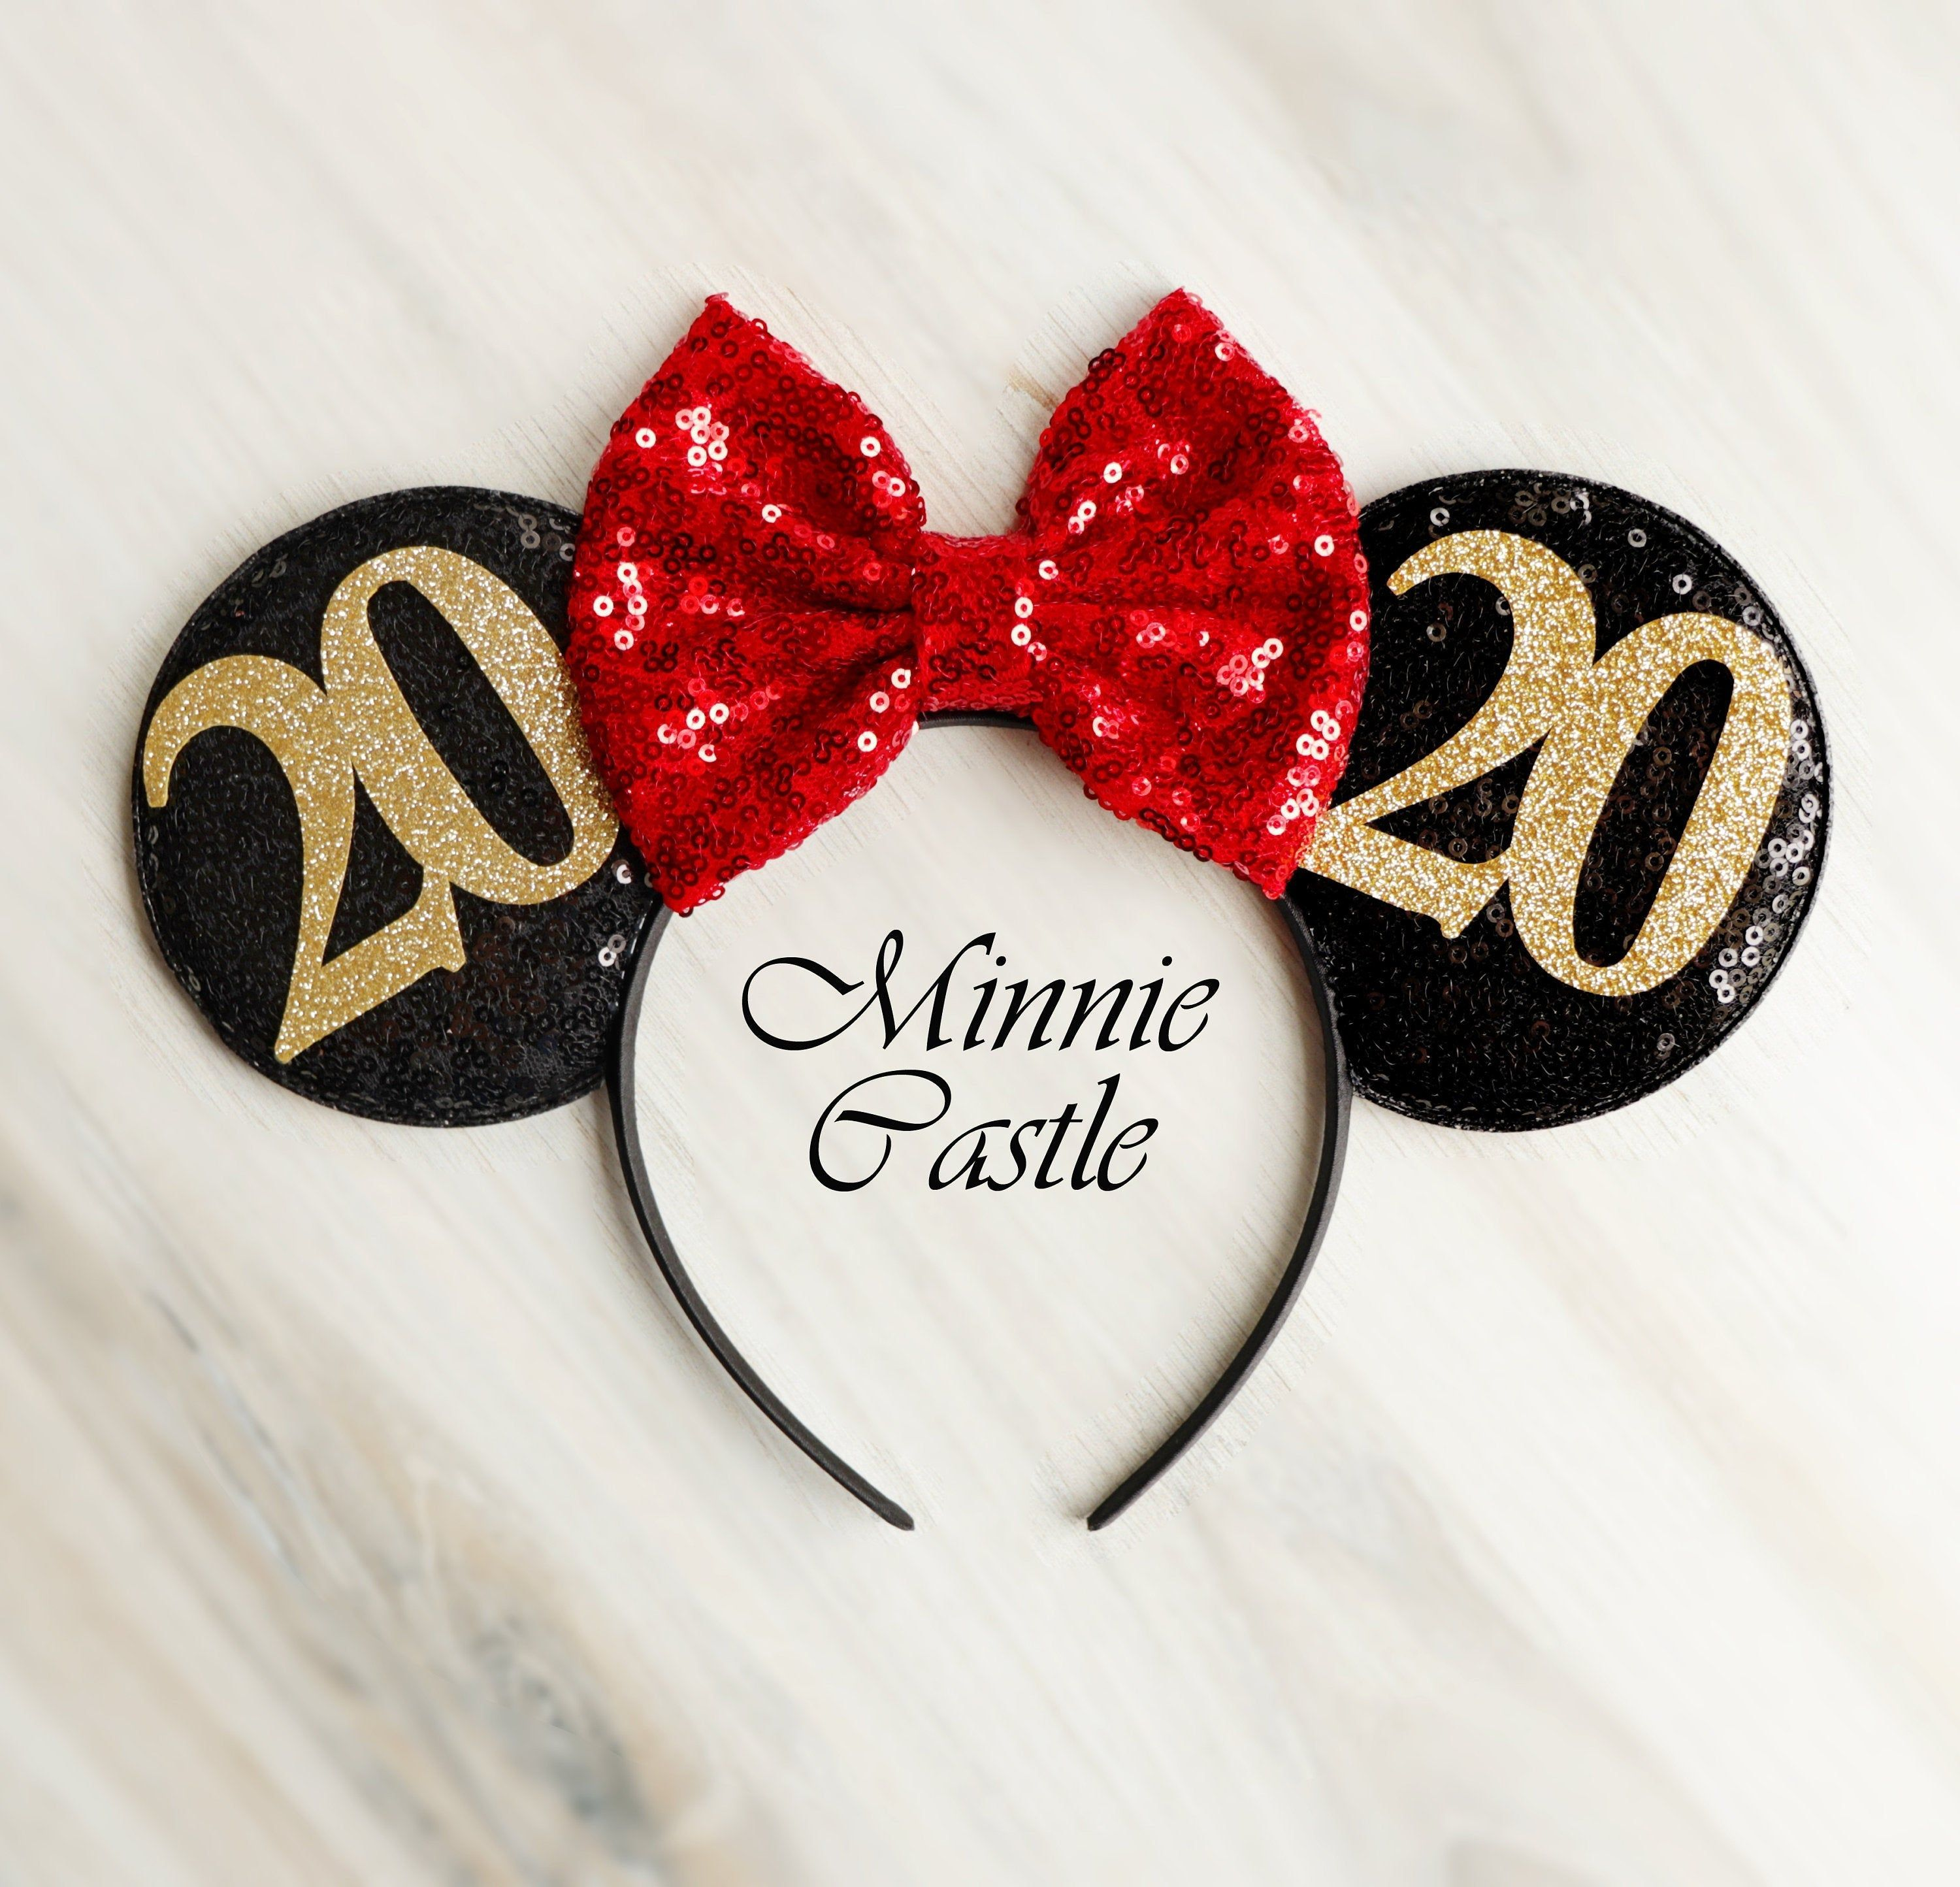 Disney Christmas Ears 2020 New Years Eve Party Red Minnie mouse ears headband 2020 New | Etsy